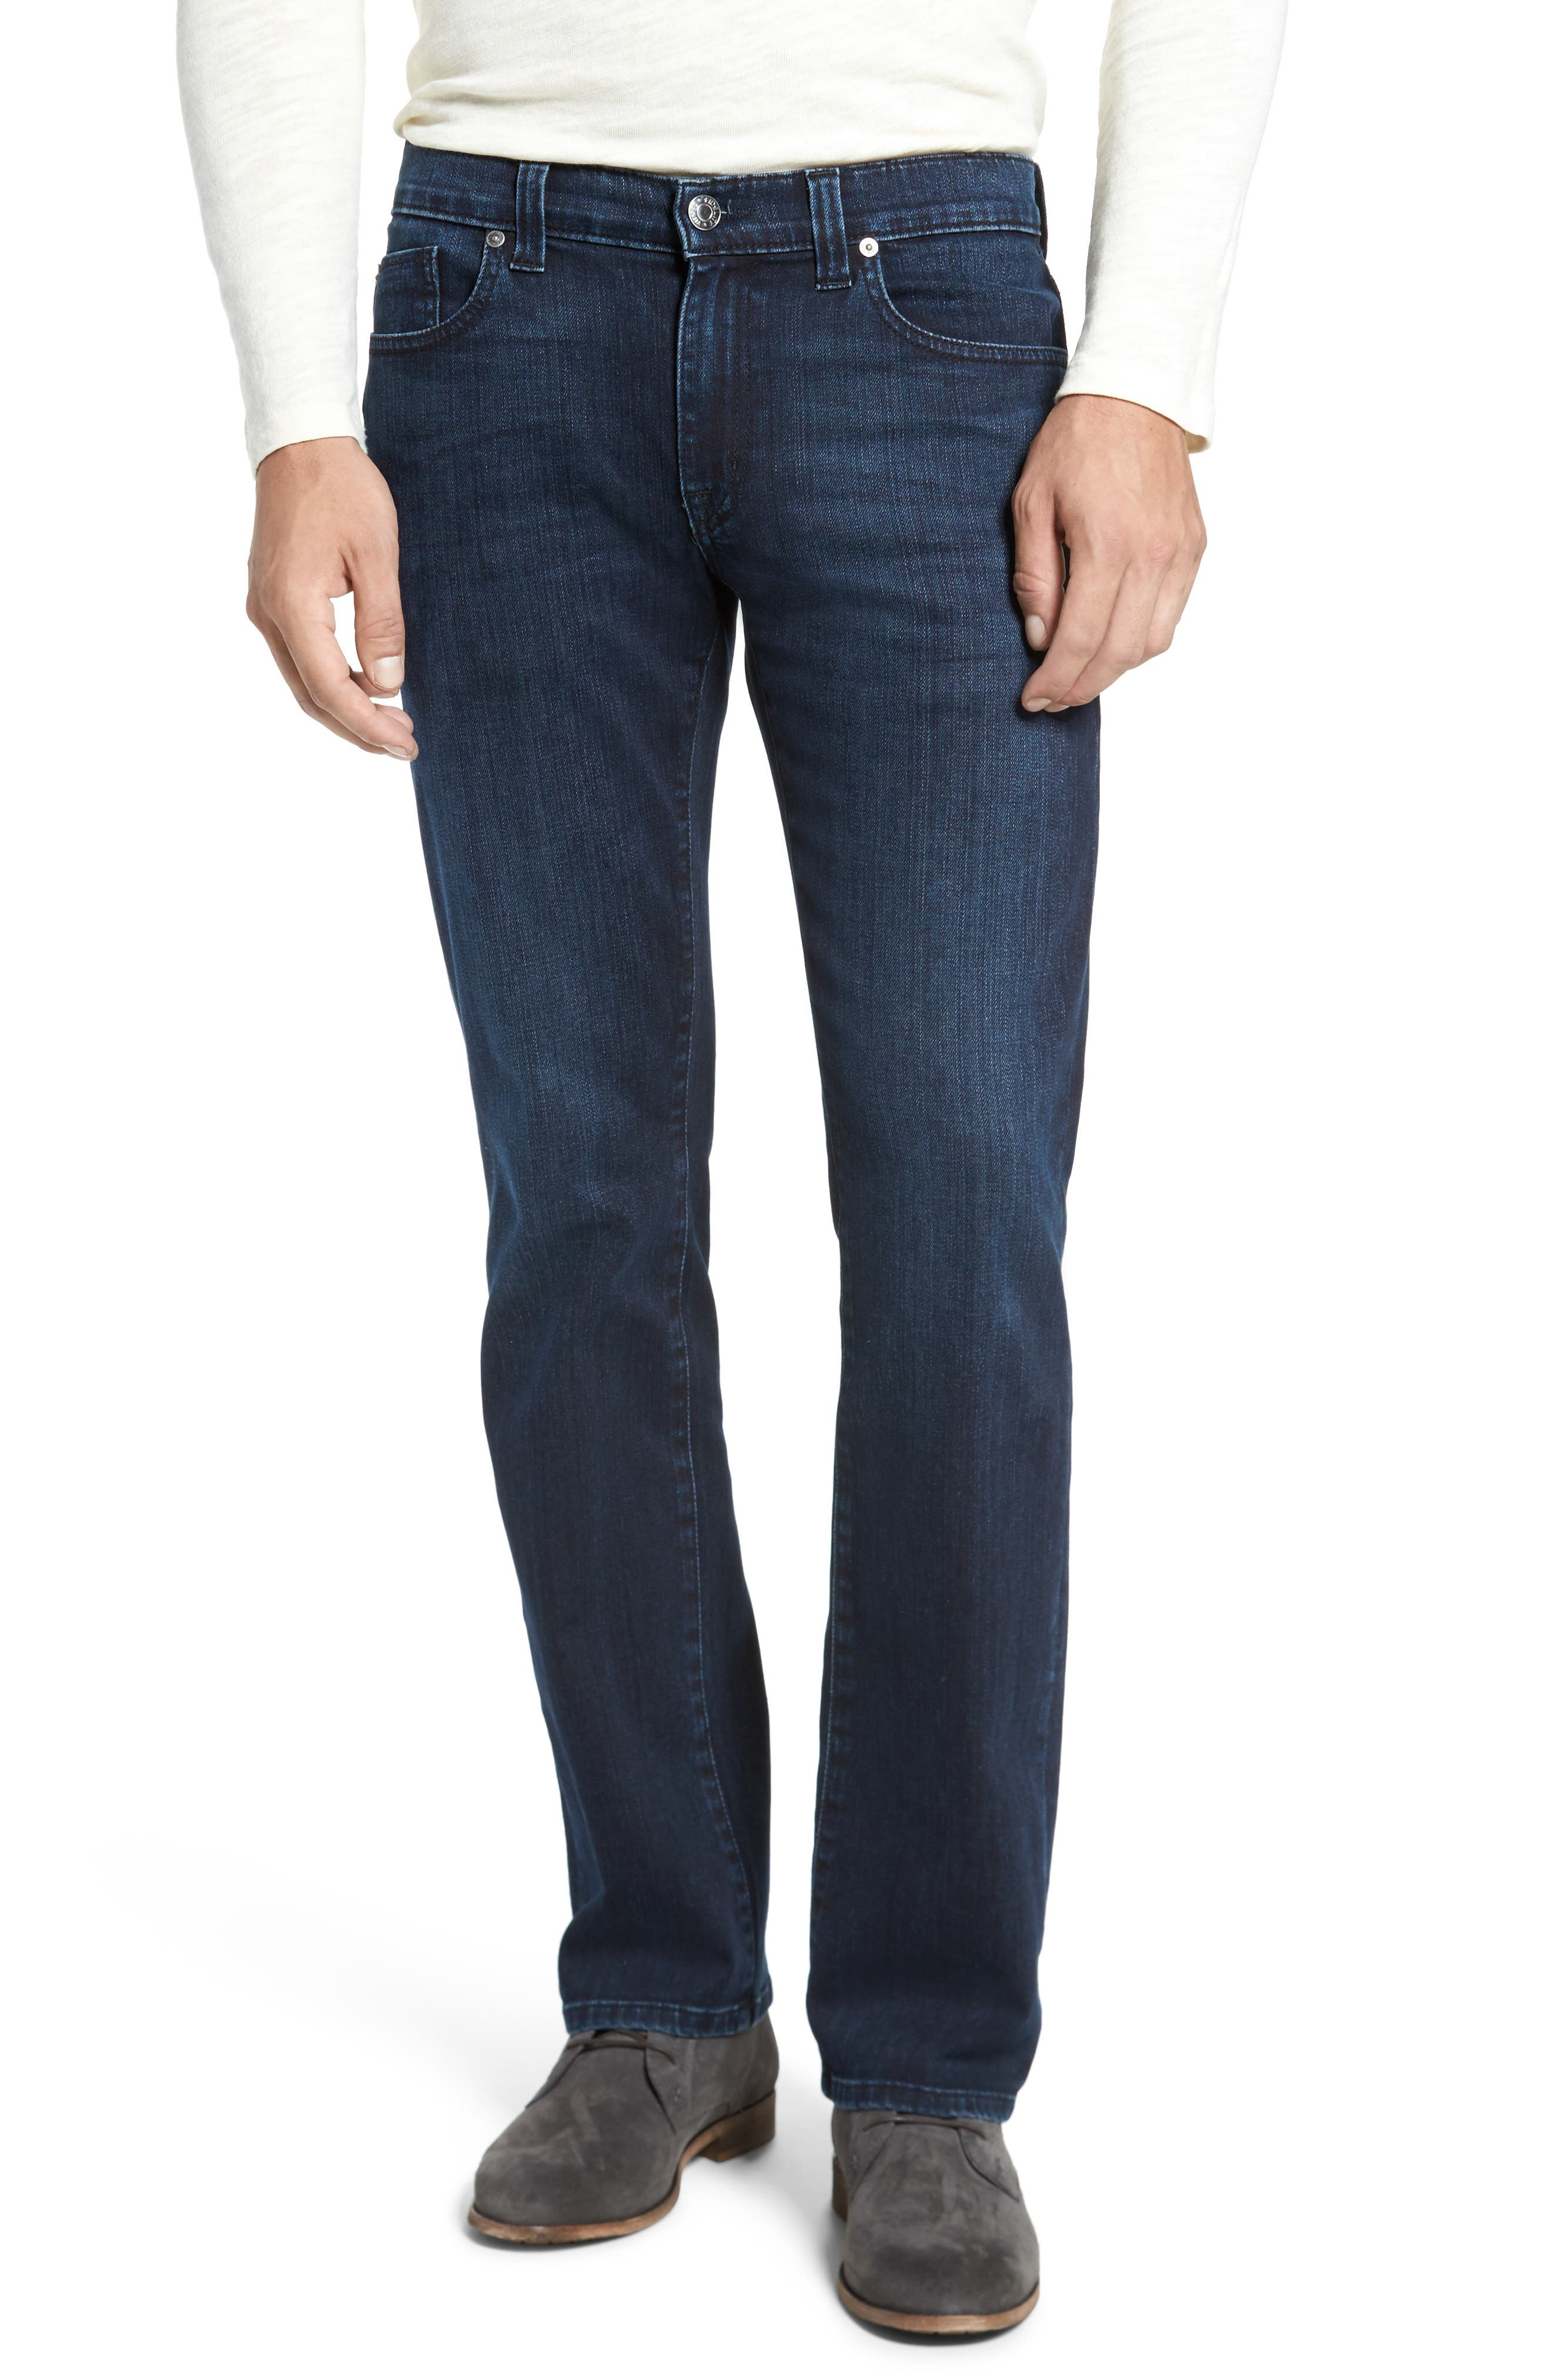 5011 Relaxed Fit Jeans,                             Main thumbnail 1, color,                             Black On Blue